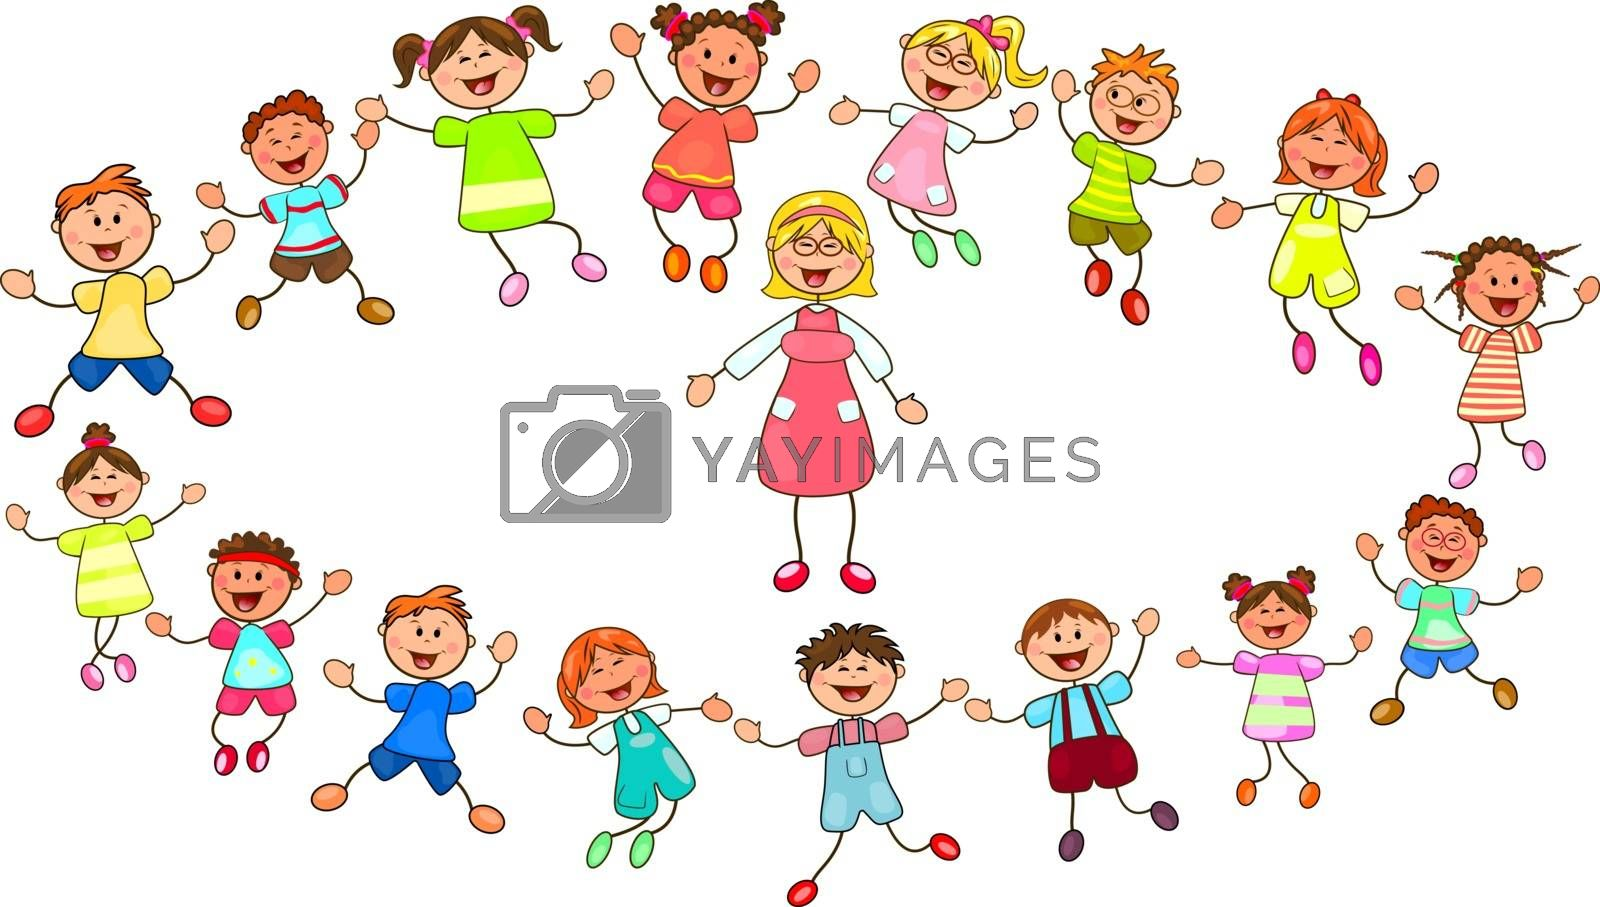 Joyful little children and a teacher. A group of children with a teacher on a walk. Group of cheerful, smiling children on a white background. Cartoon joyful children. Group of happy, smiling children.